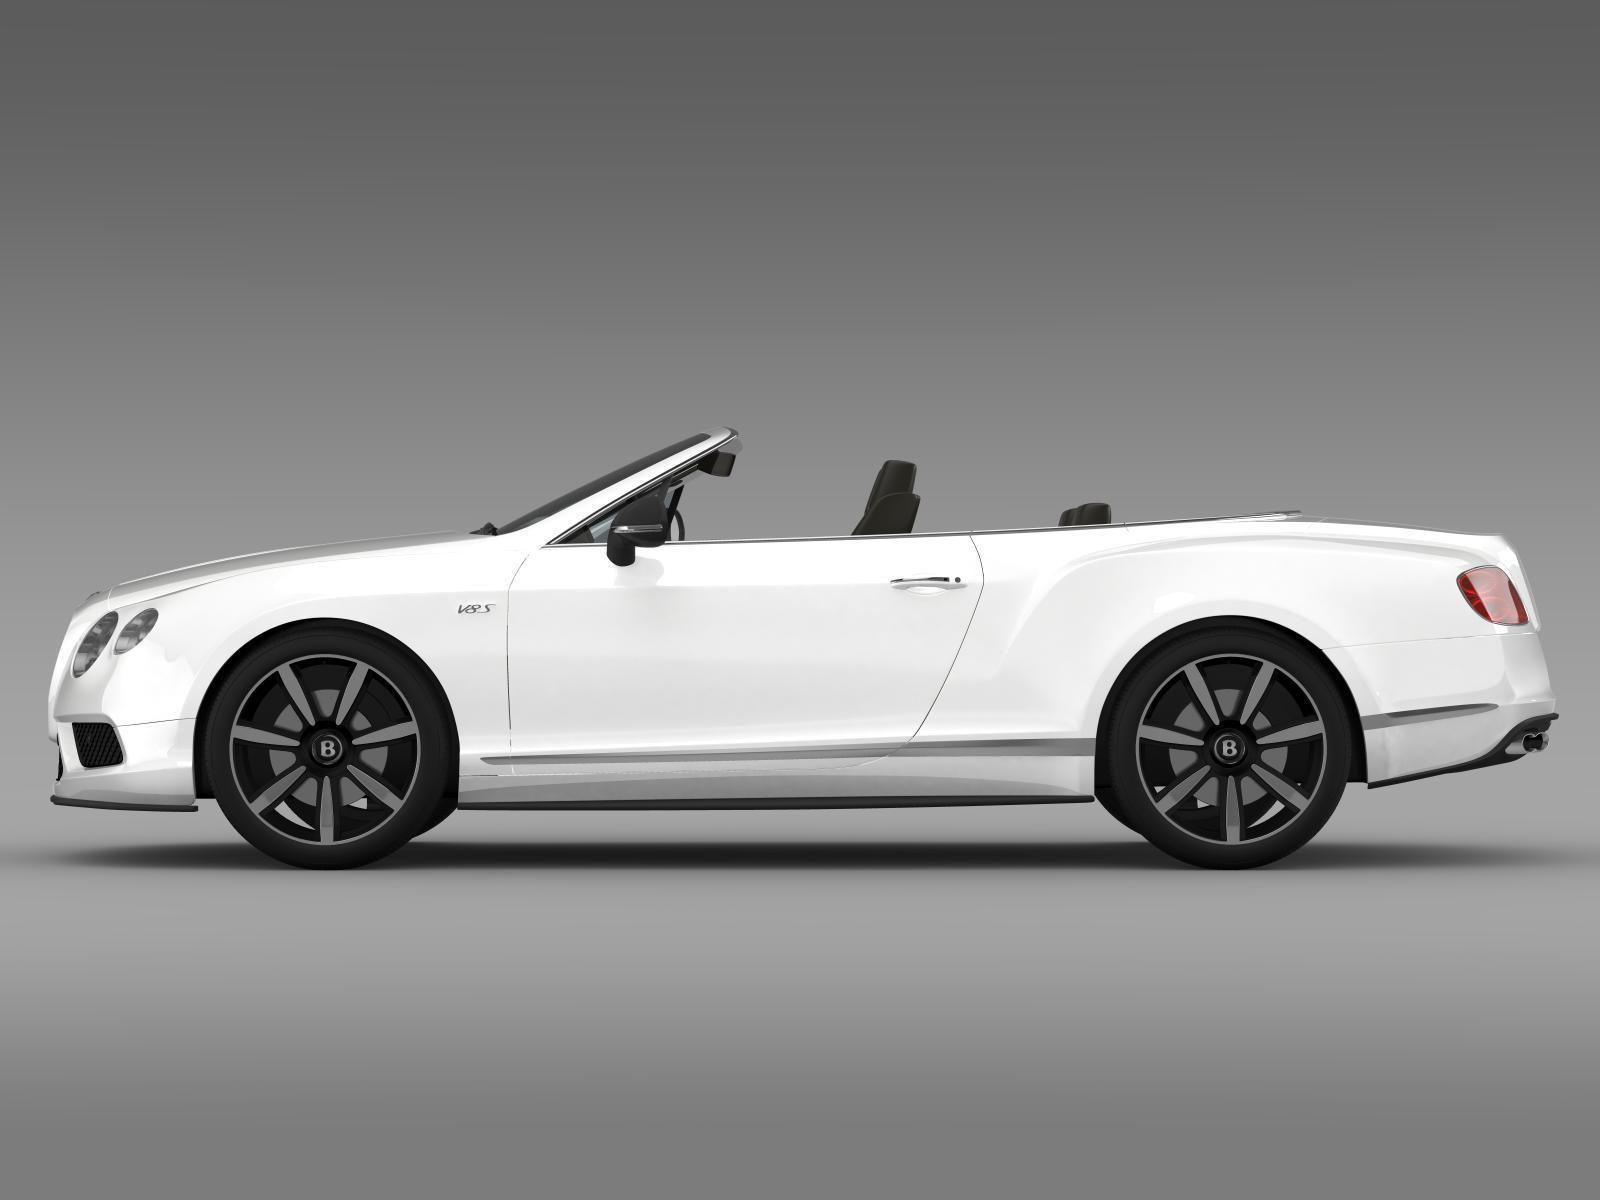 bentley continental gt v8 s convertible 2014 3d model max. Black Bedroom Furniture Sets. Home Design Ideas